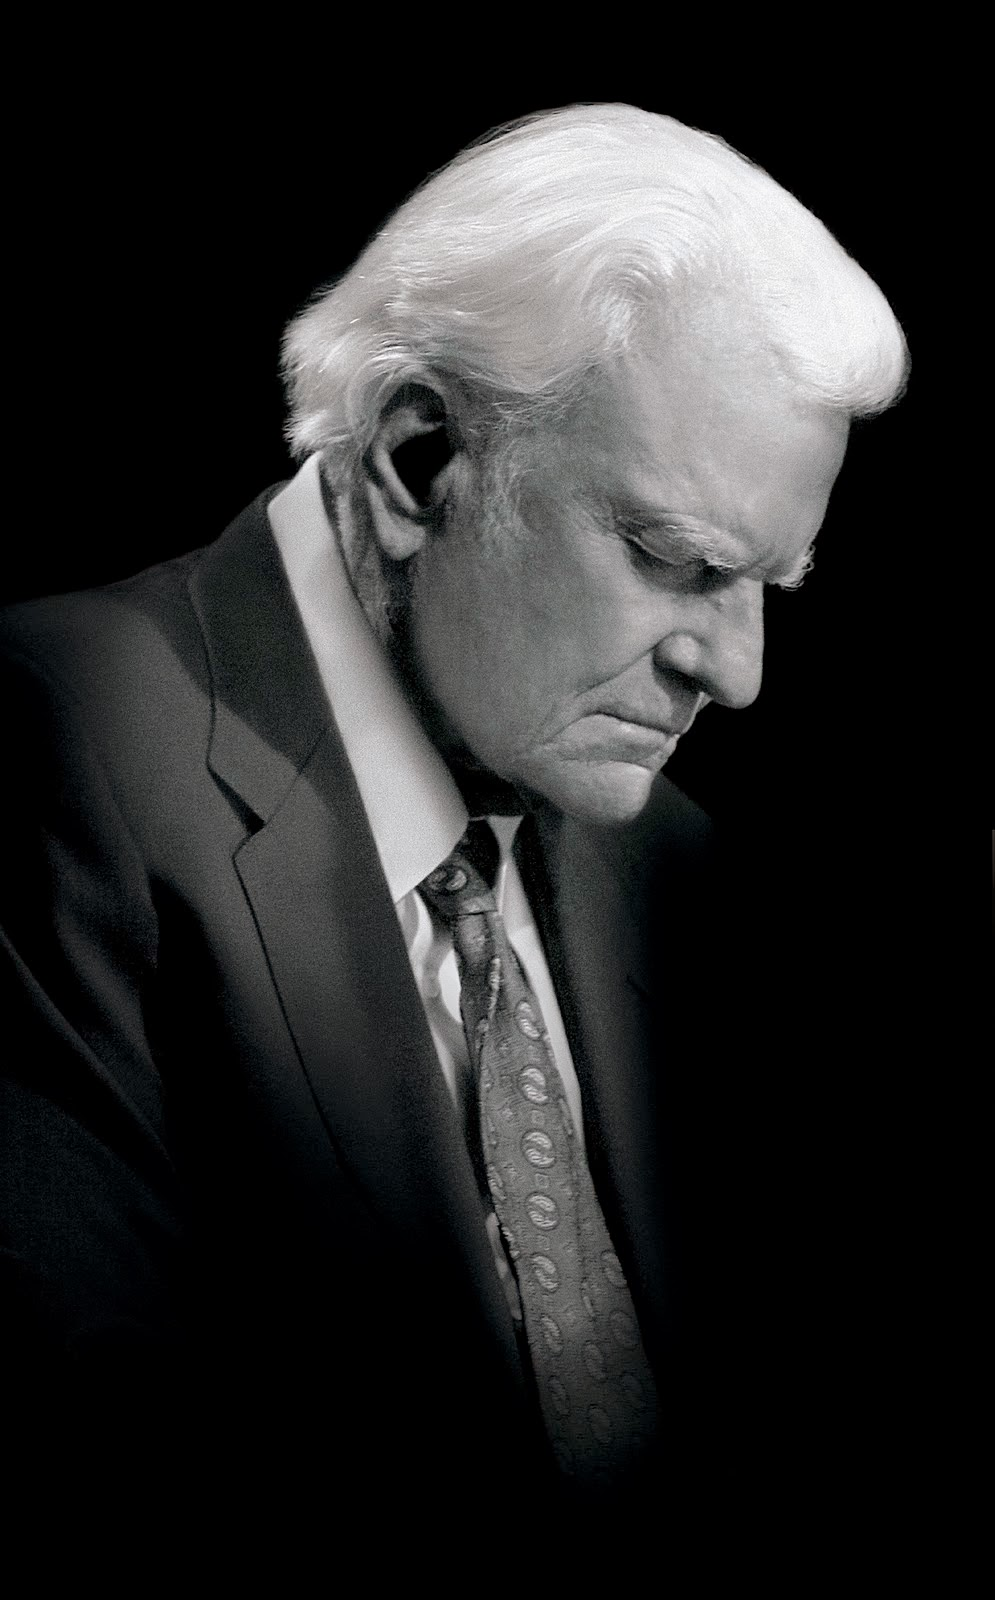 billy graham - photo #23